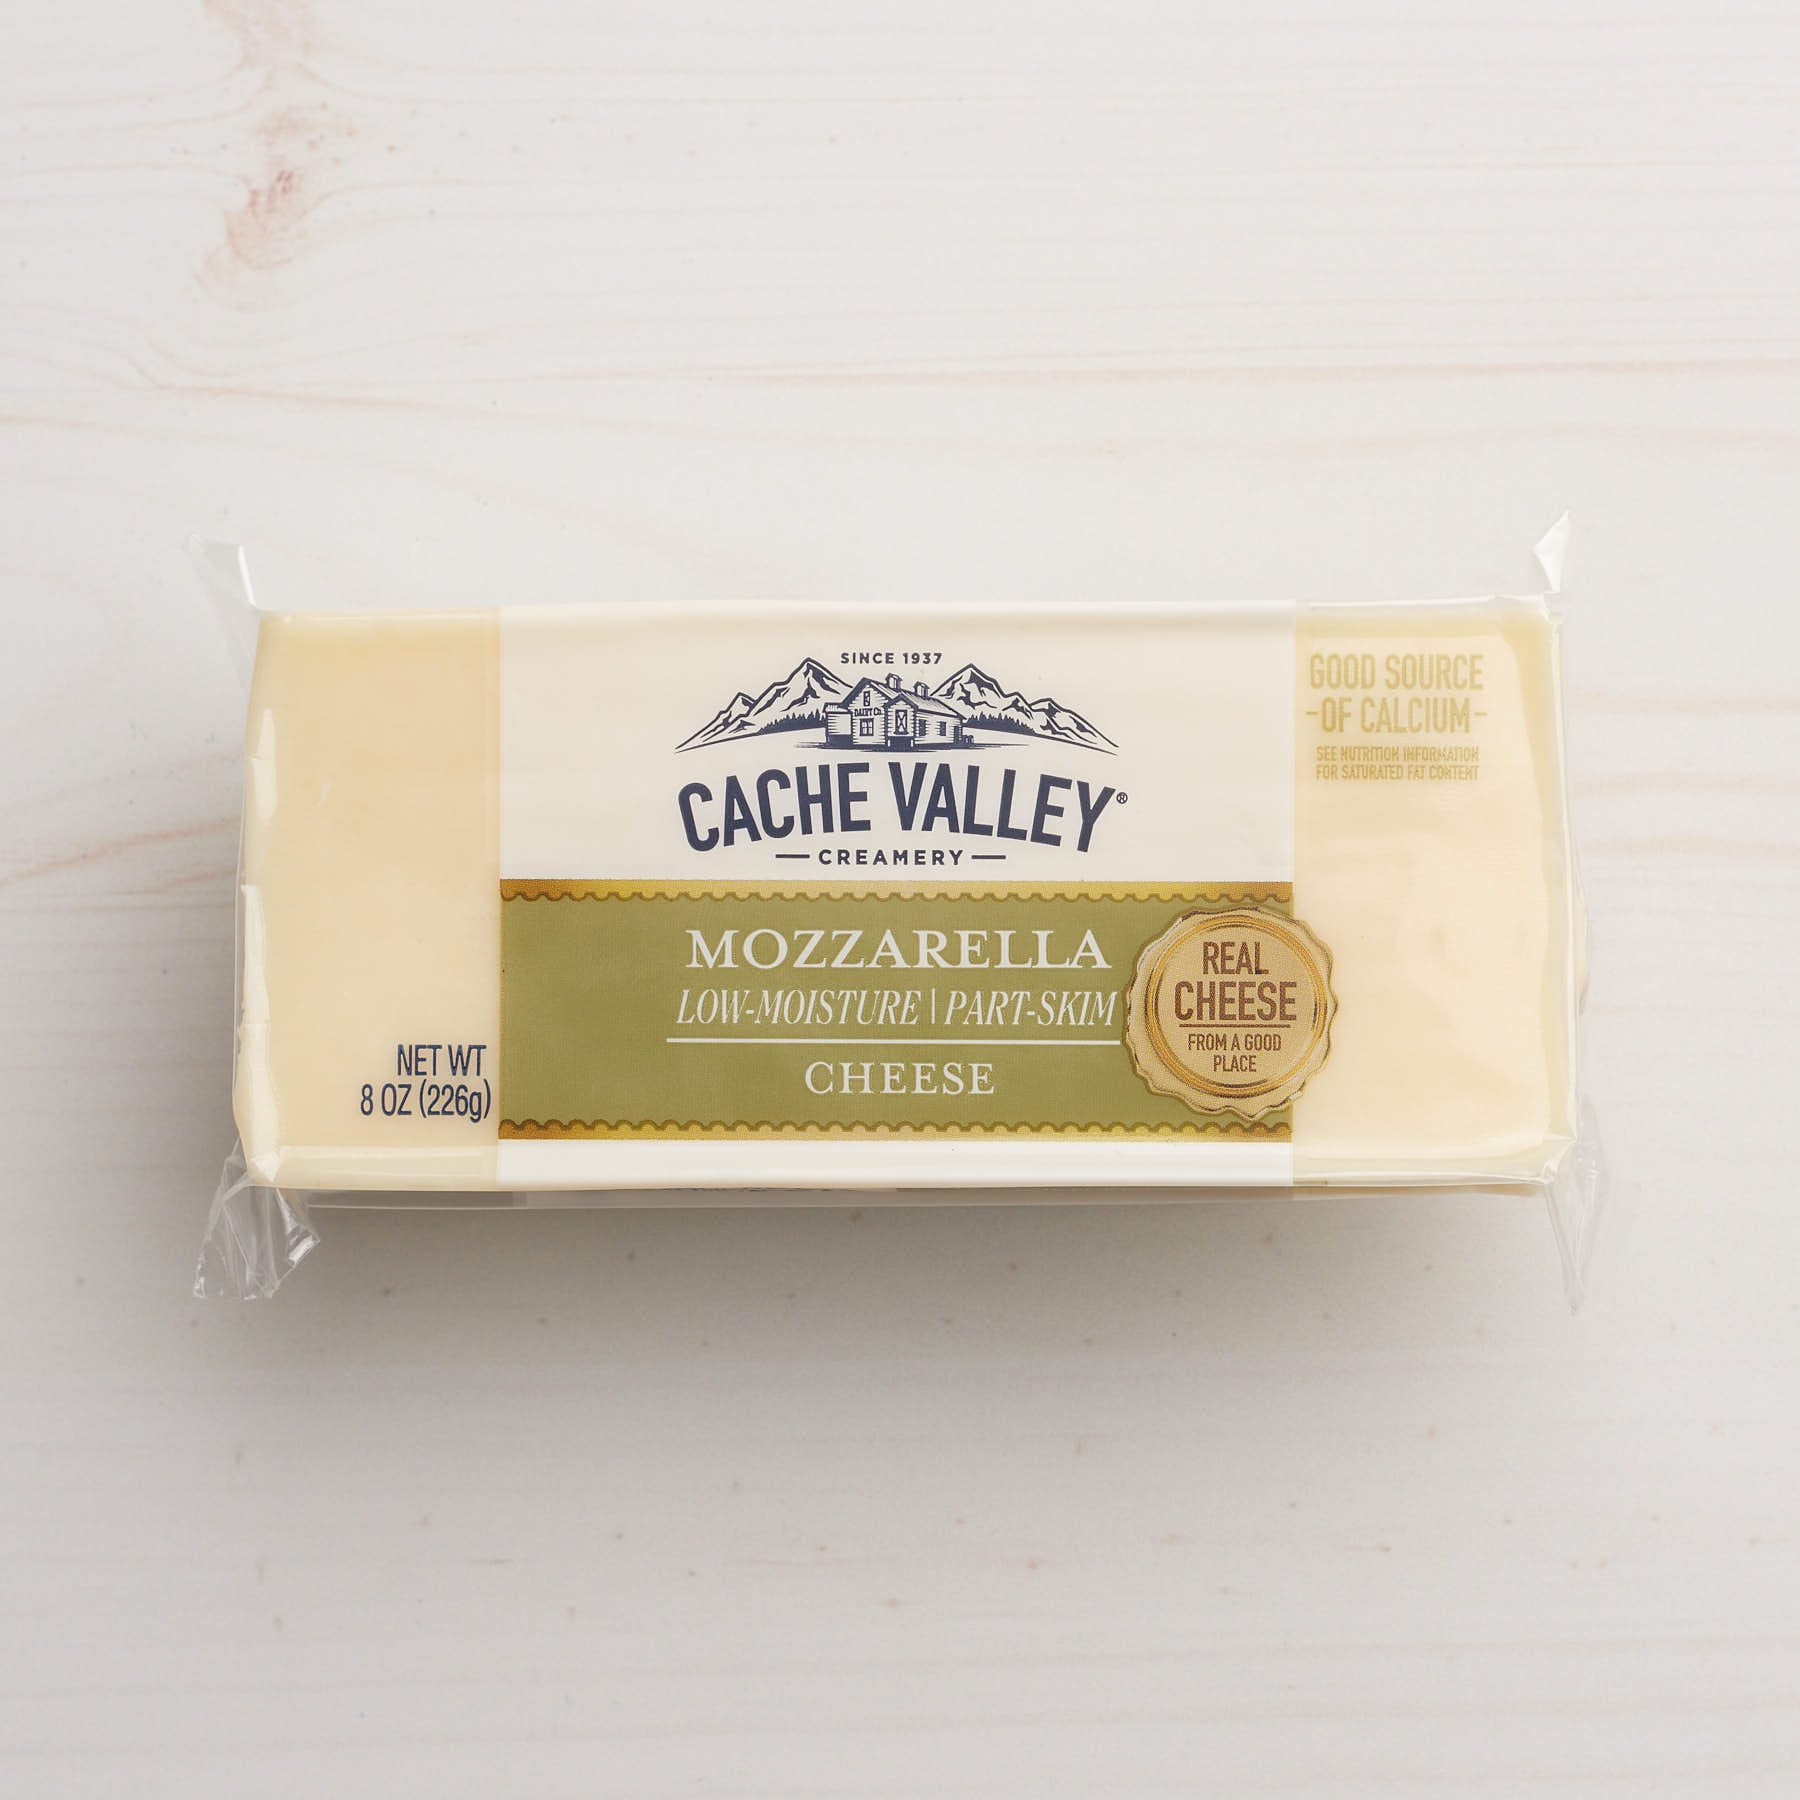 Image of Cache Valley Creamery Mozzarella Cheese